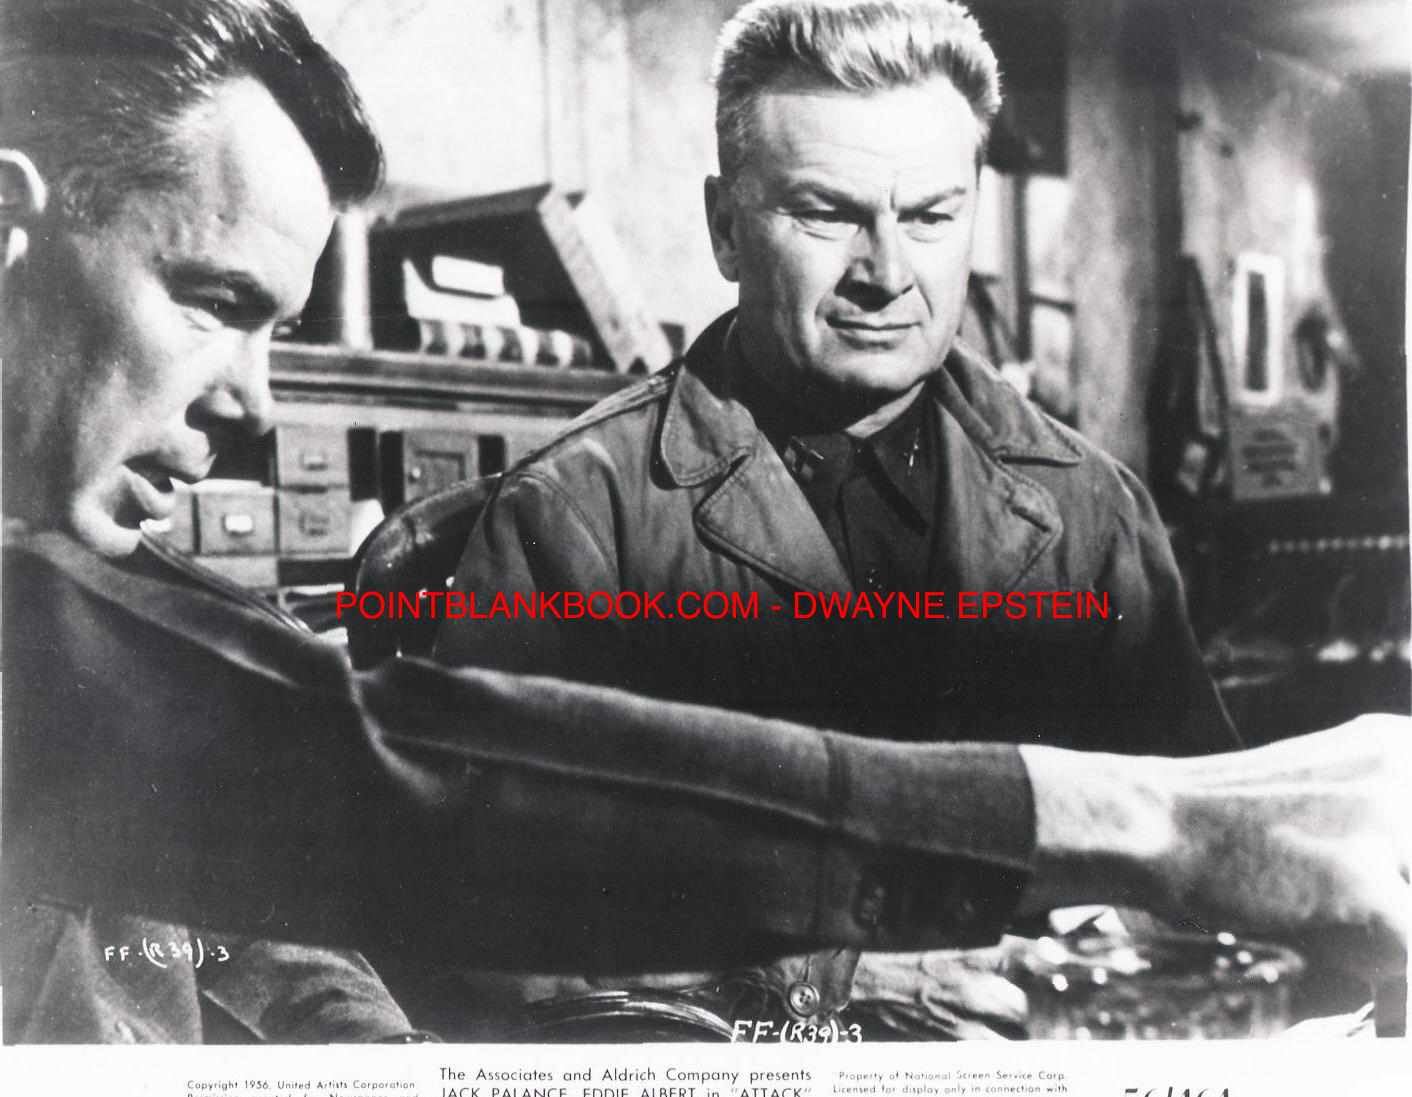 Lee Marvin (left) goes over the attack plan with Eddie Albert (right).